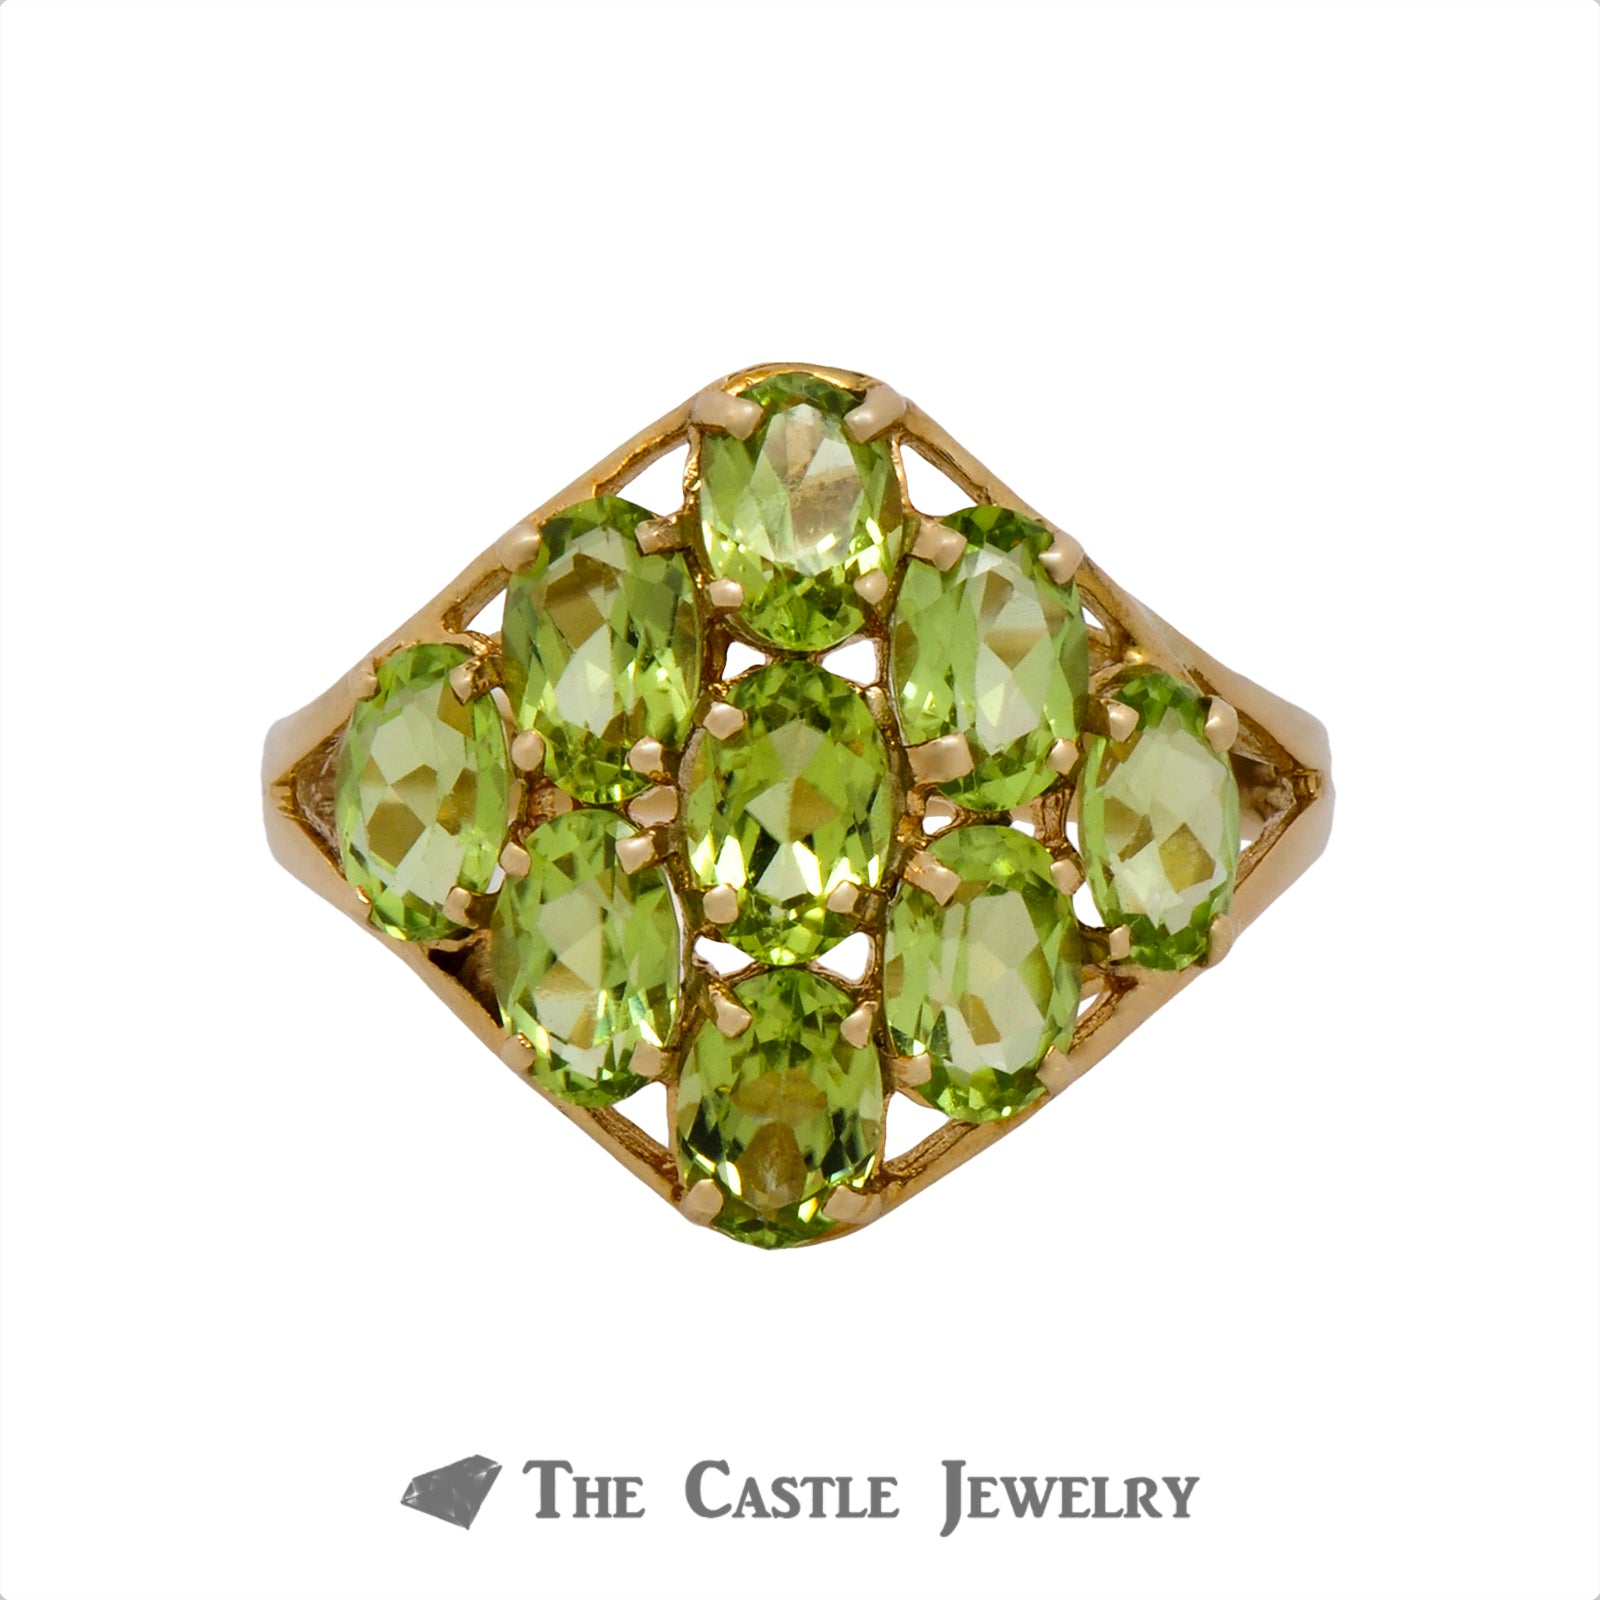 Oval Cut Peridot Cluster Ring Crafted in 10k Yellow Gold